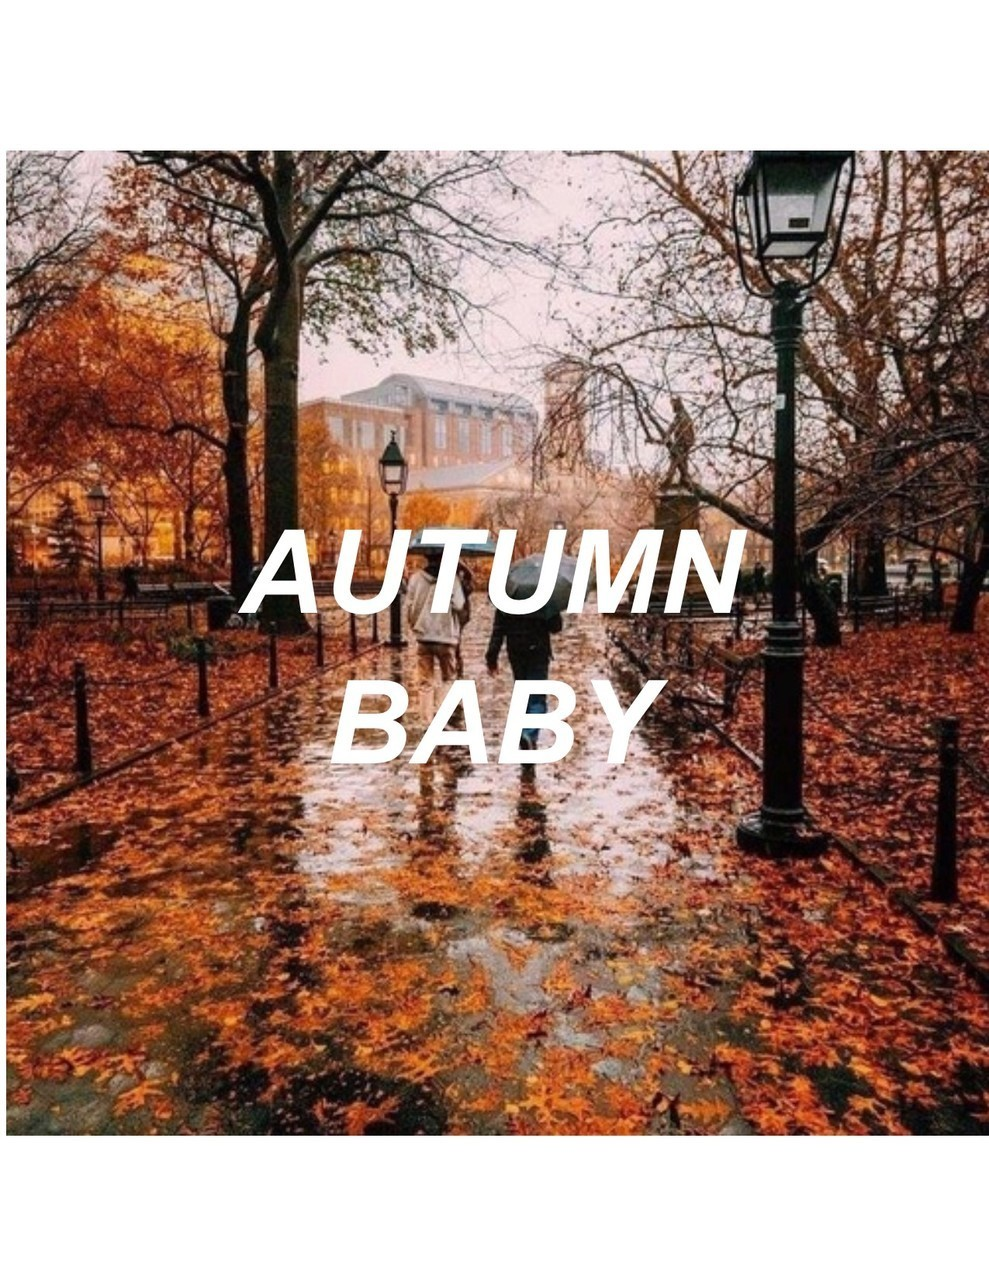 article, mood, and autumn image